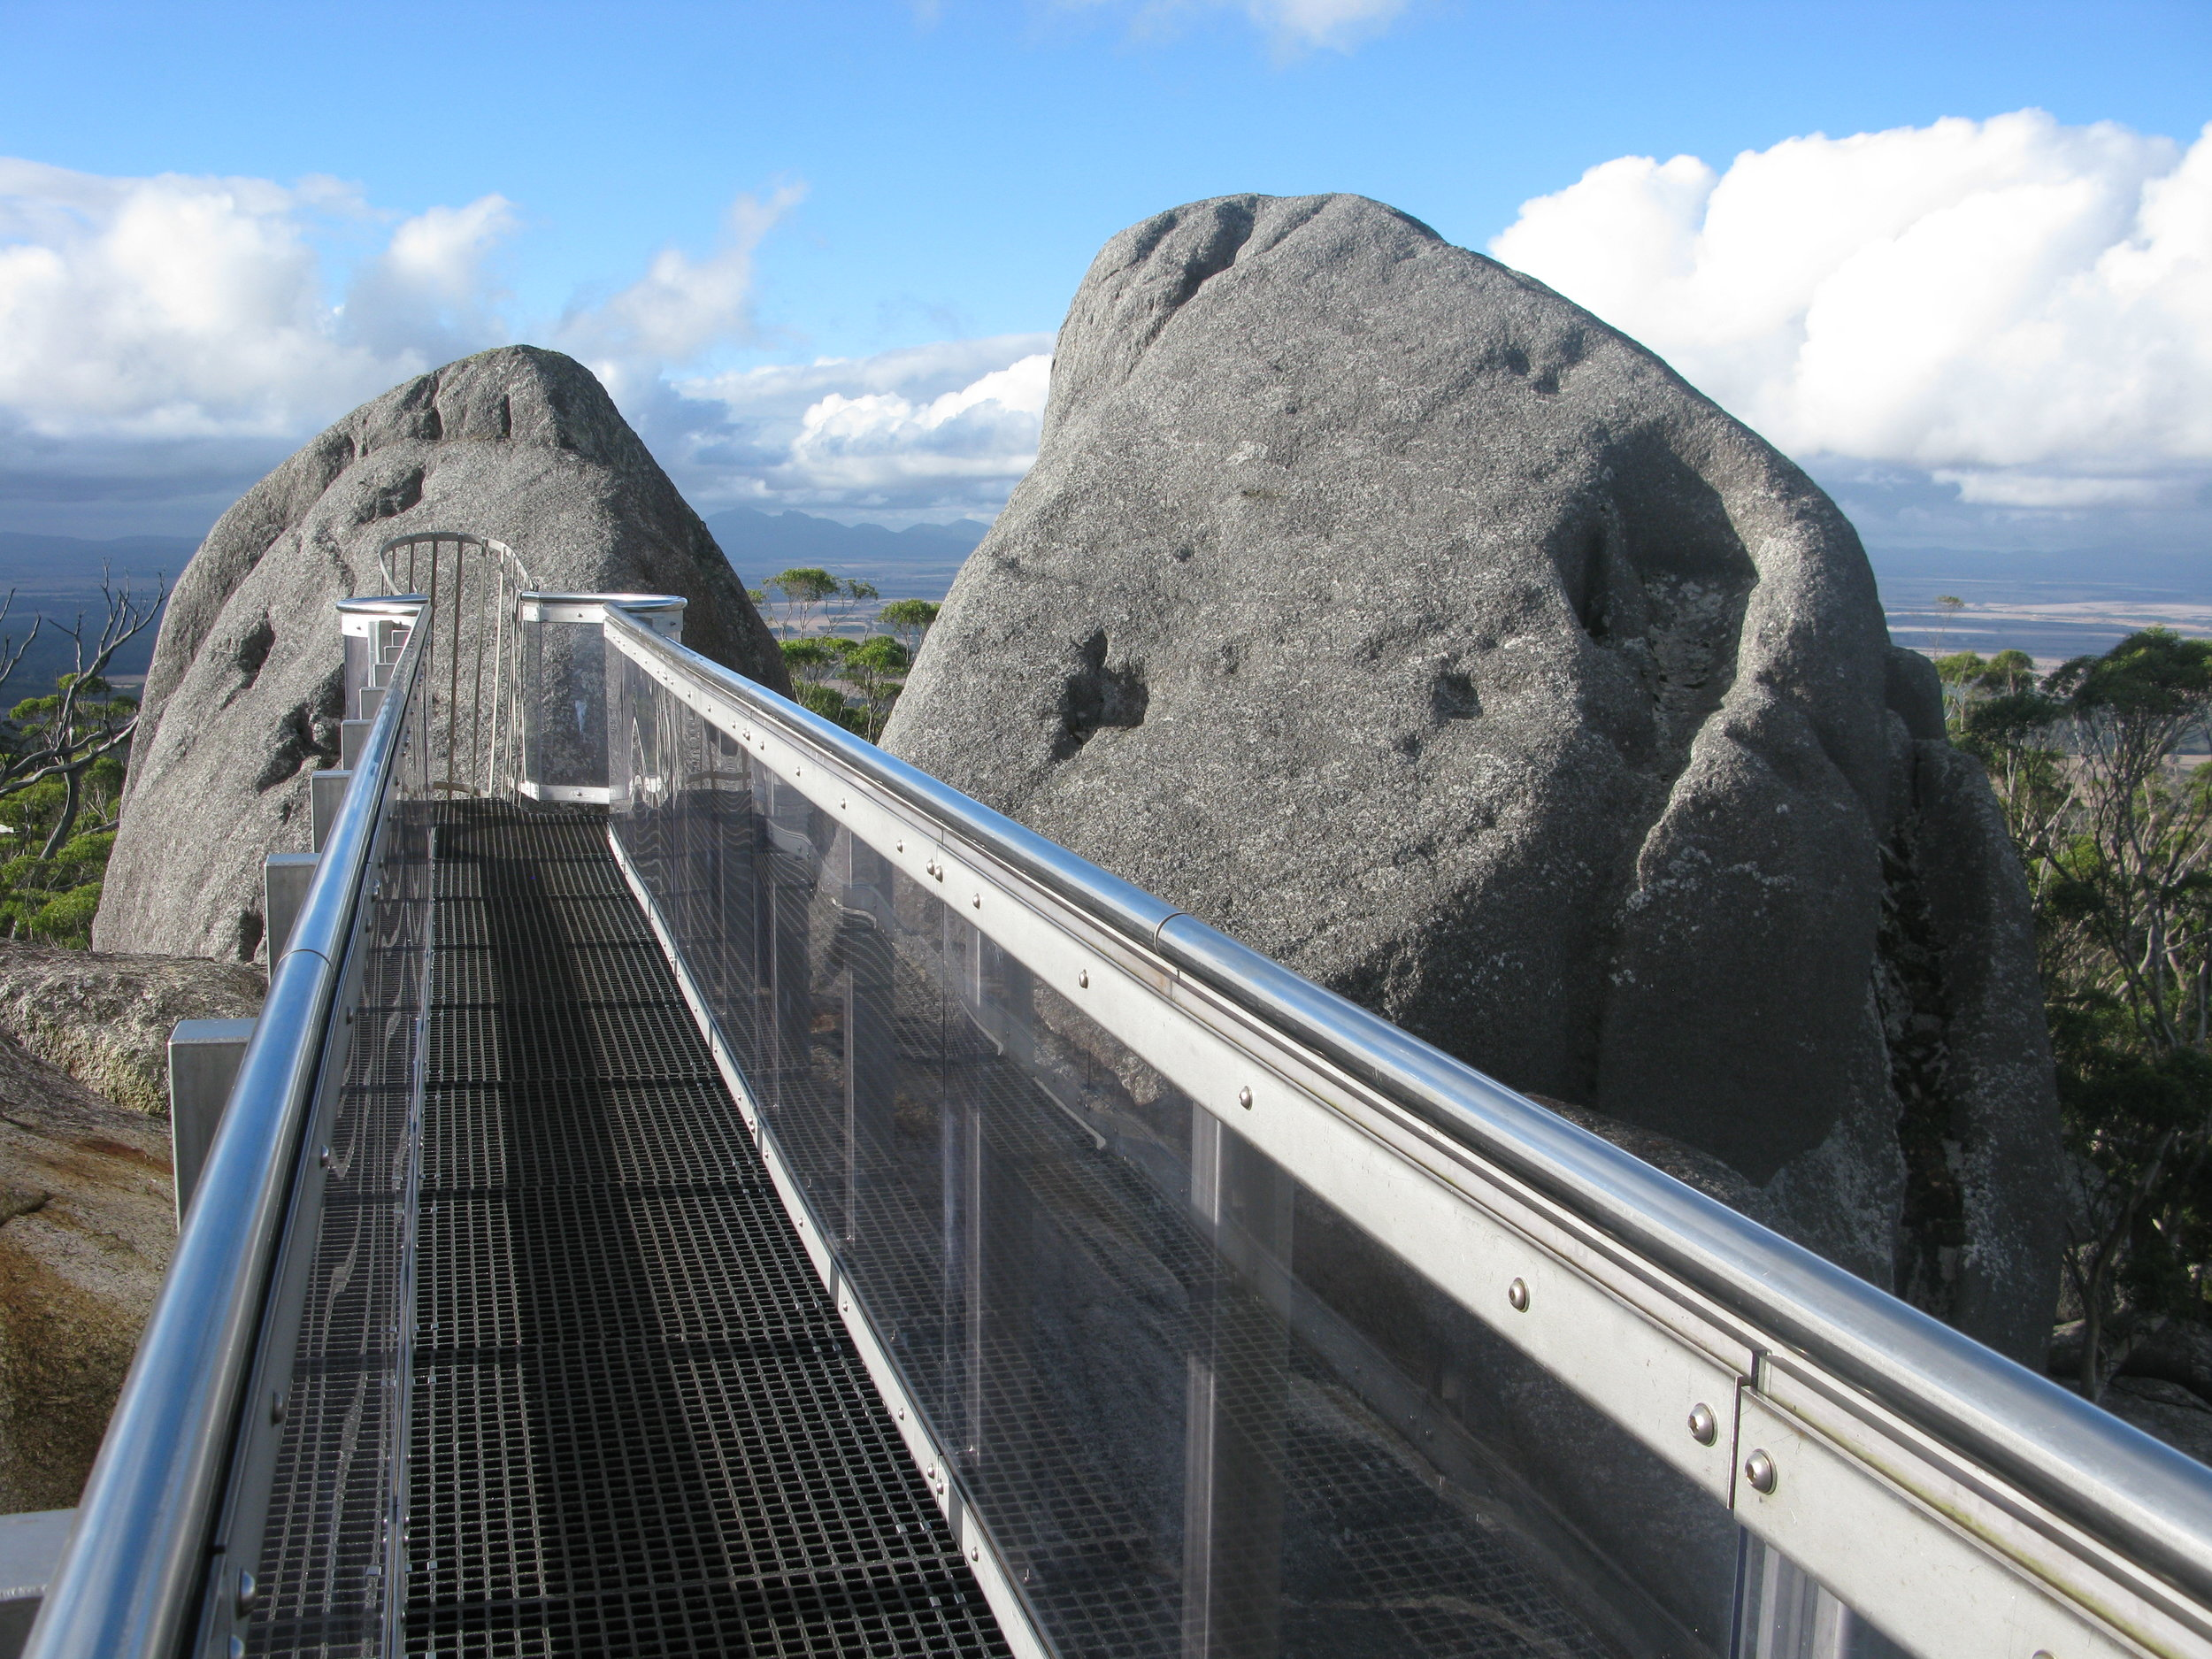 Granite Skywalk pathway at Castle Rock Image Credit: Aussie Oc via Wikimedia Commons